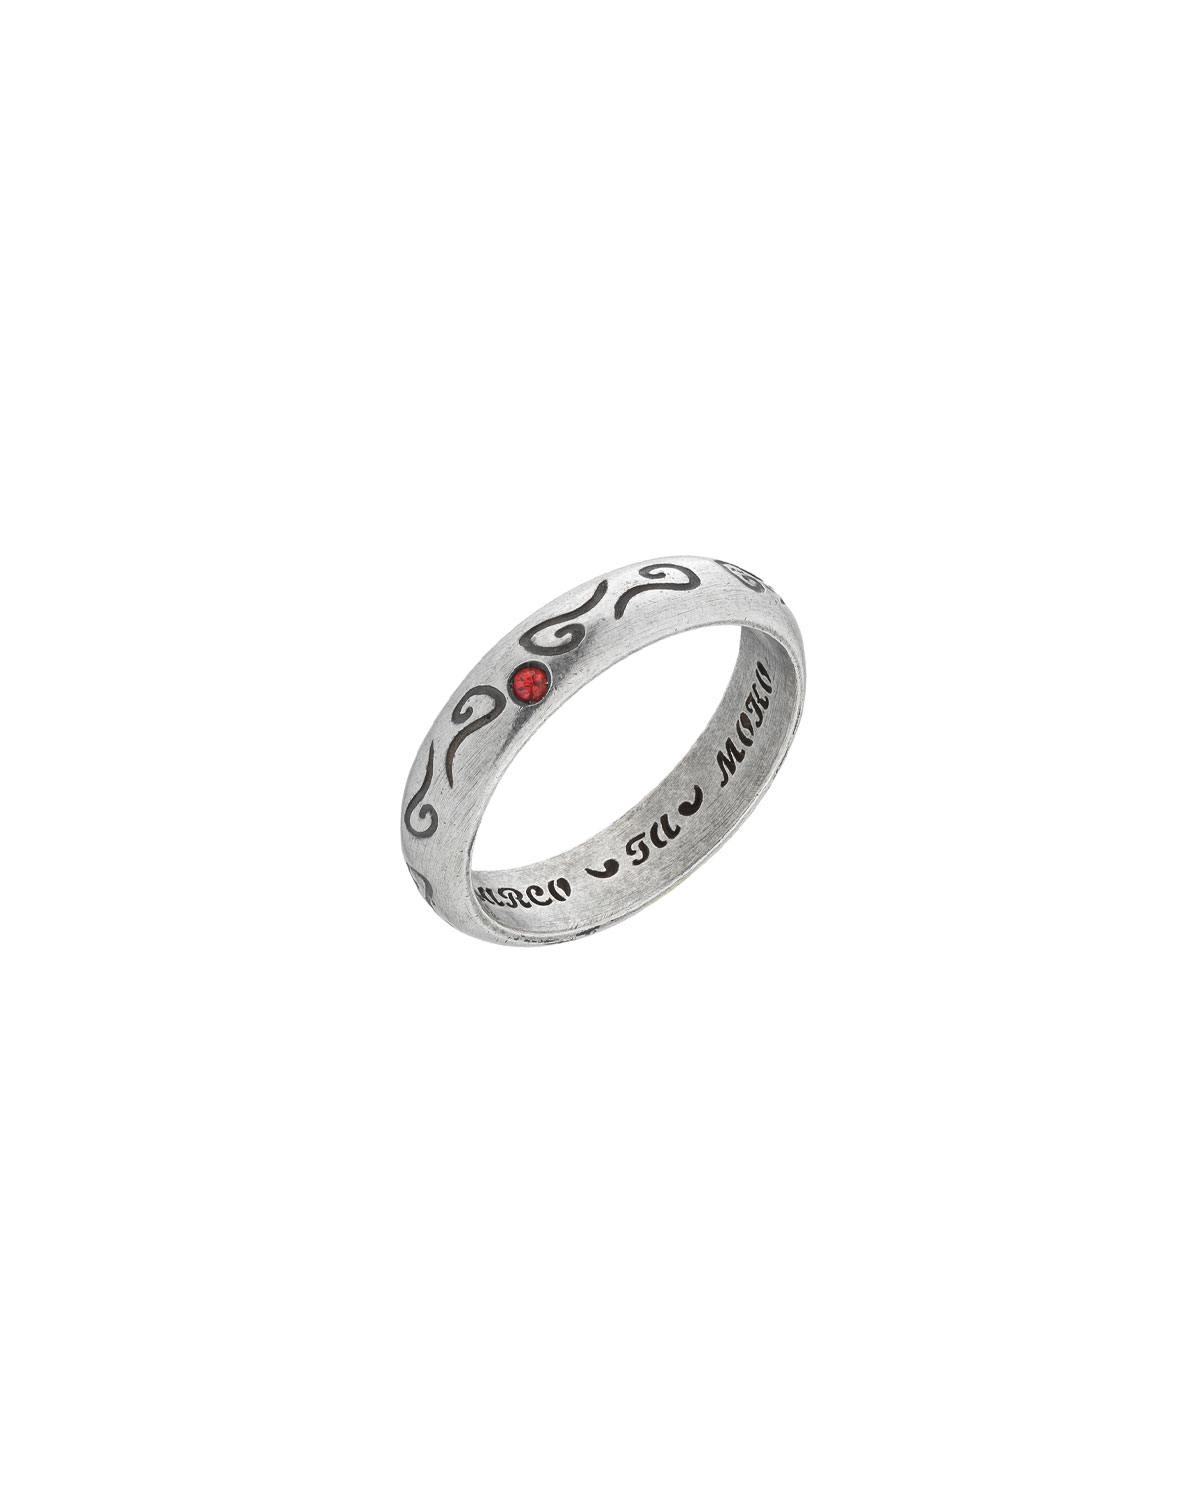 MARCO TA MOKO Men'S Silver Band Ring With Red Sapphire, Size 10